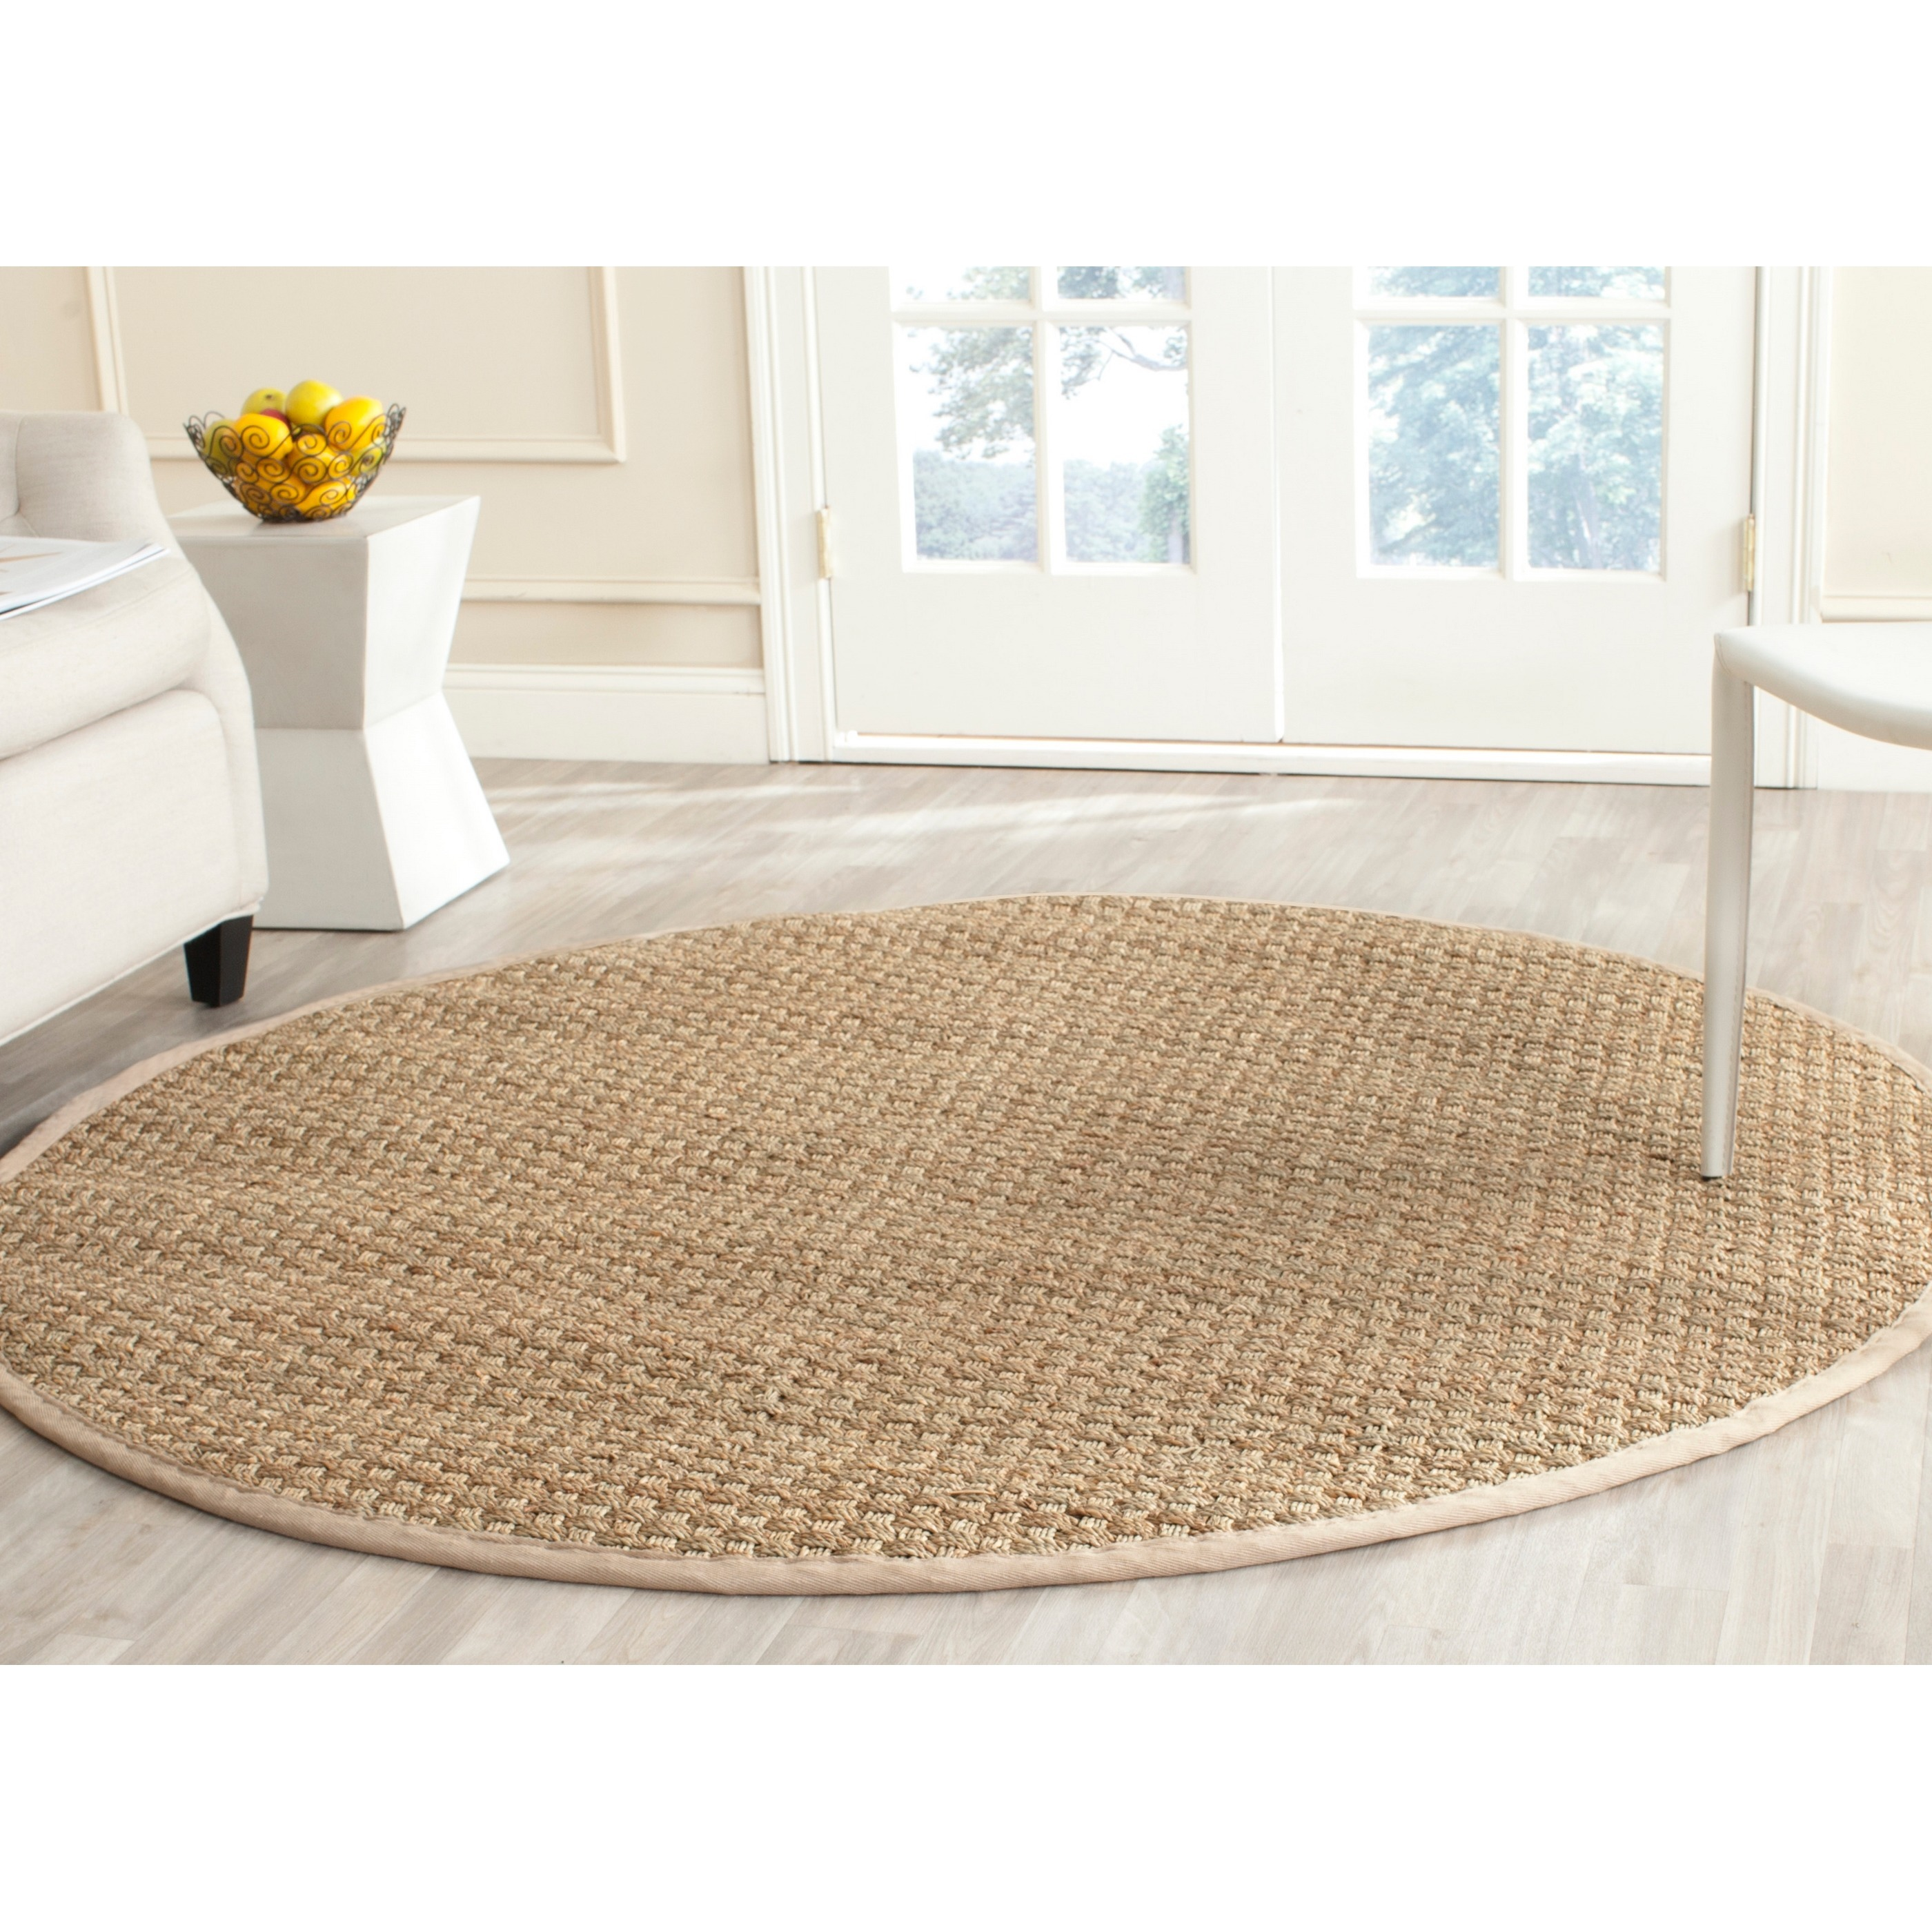 Sisal Rugs Ikea Natural Beauty and Benefits